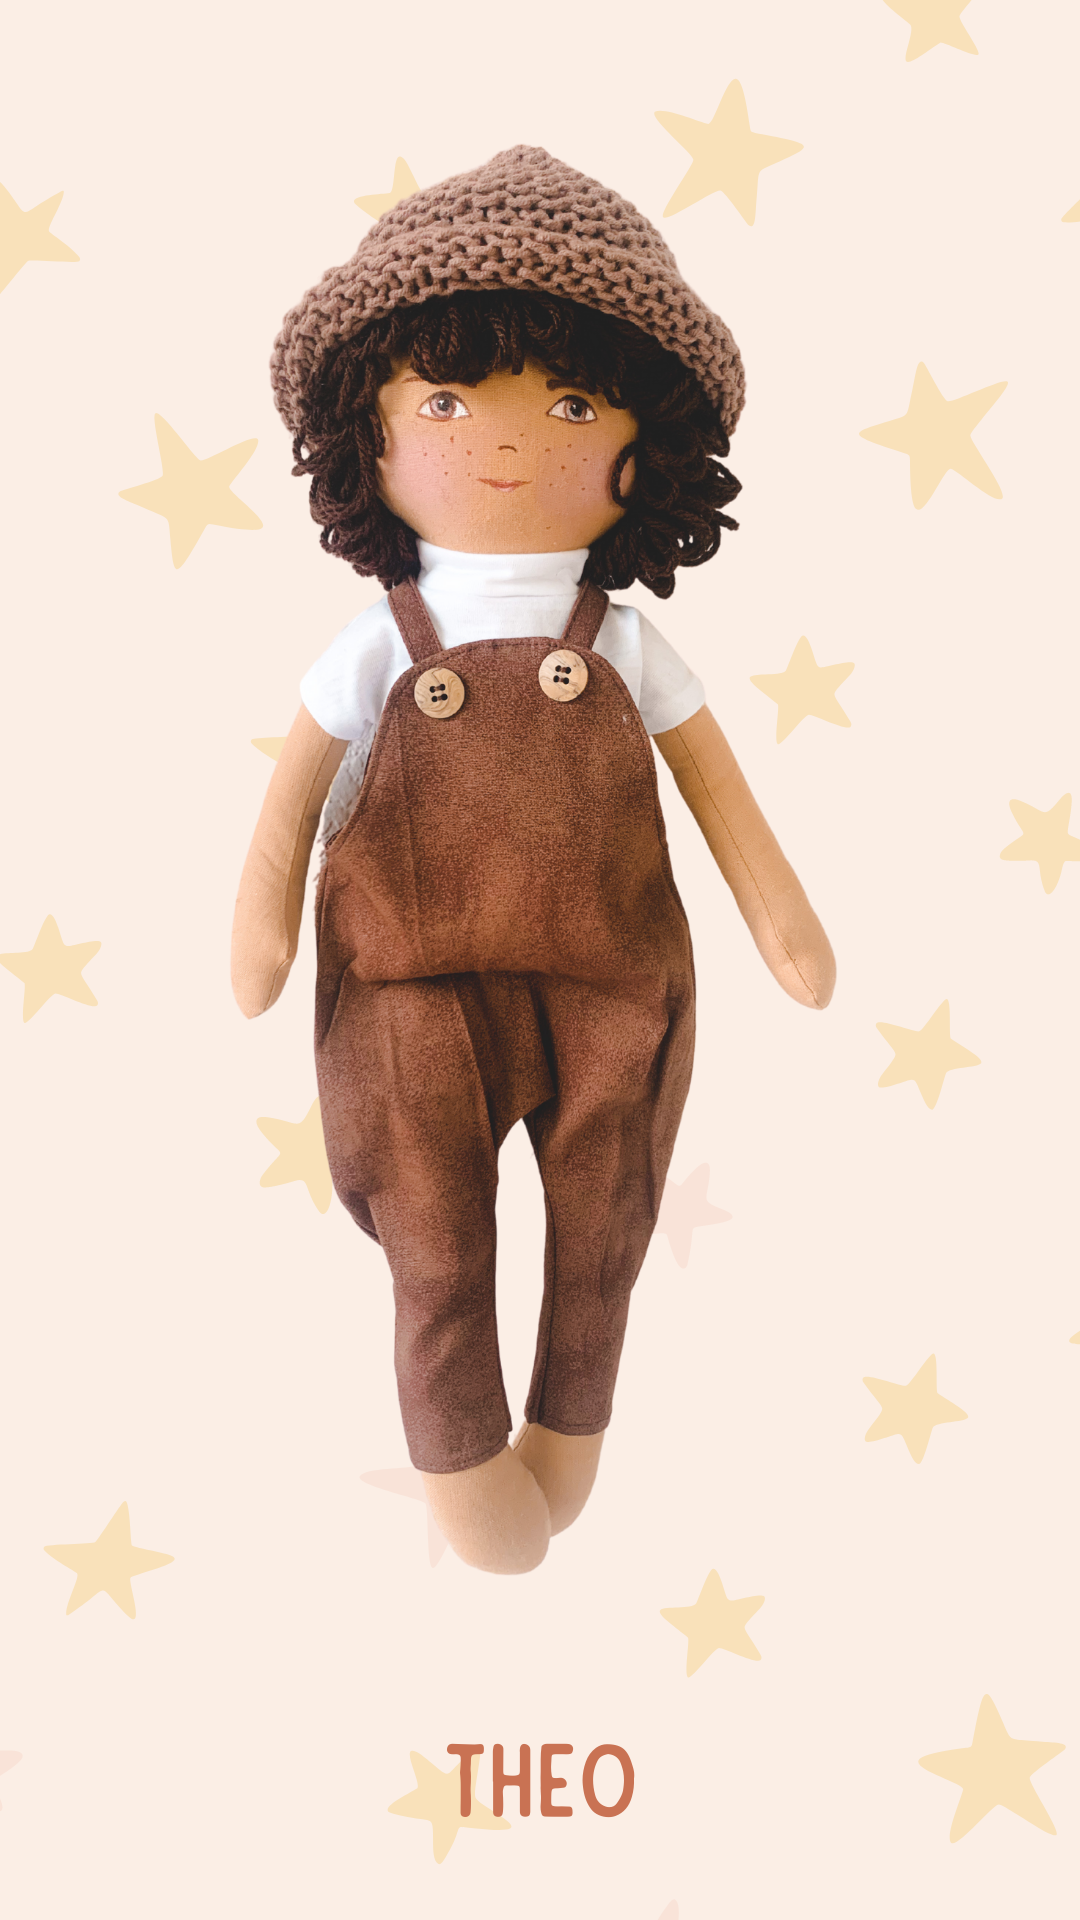 THEO - Handmade Heirloom Doll